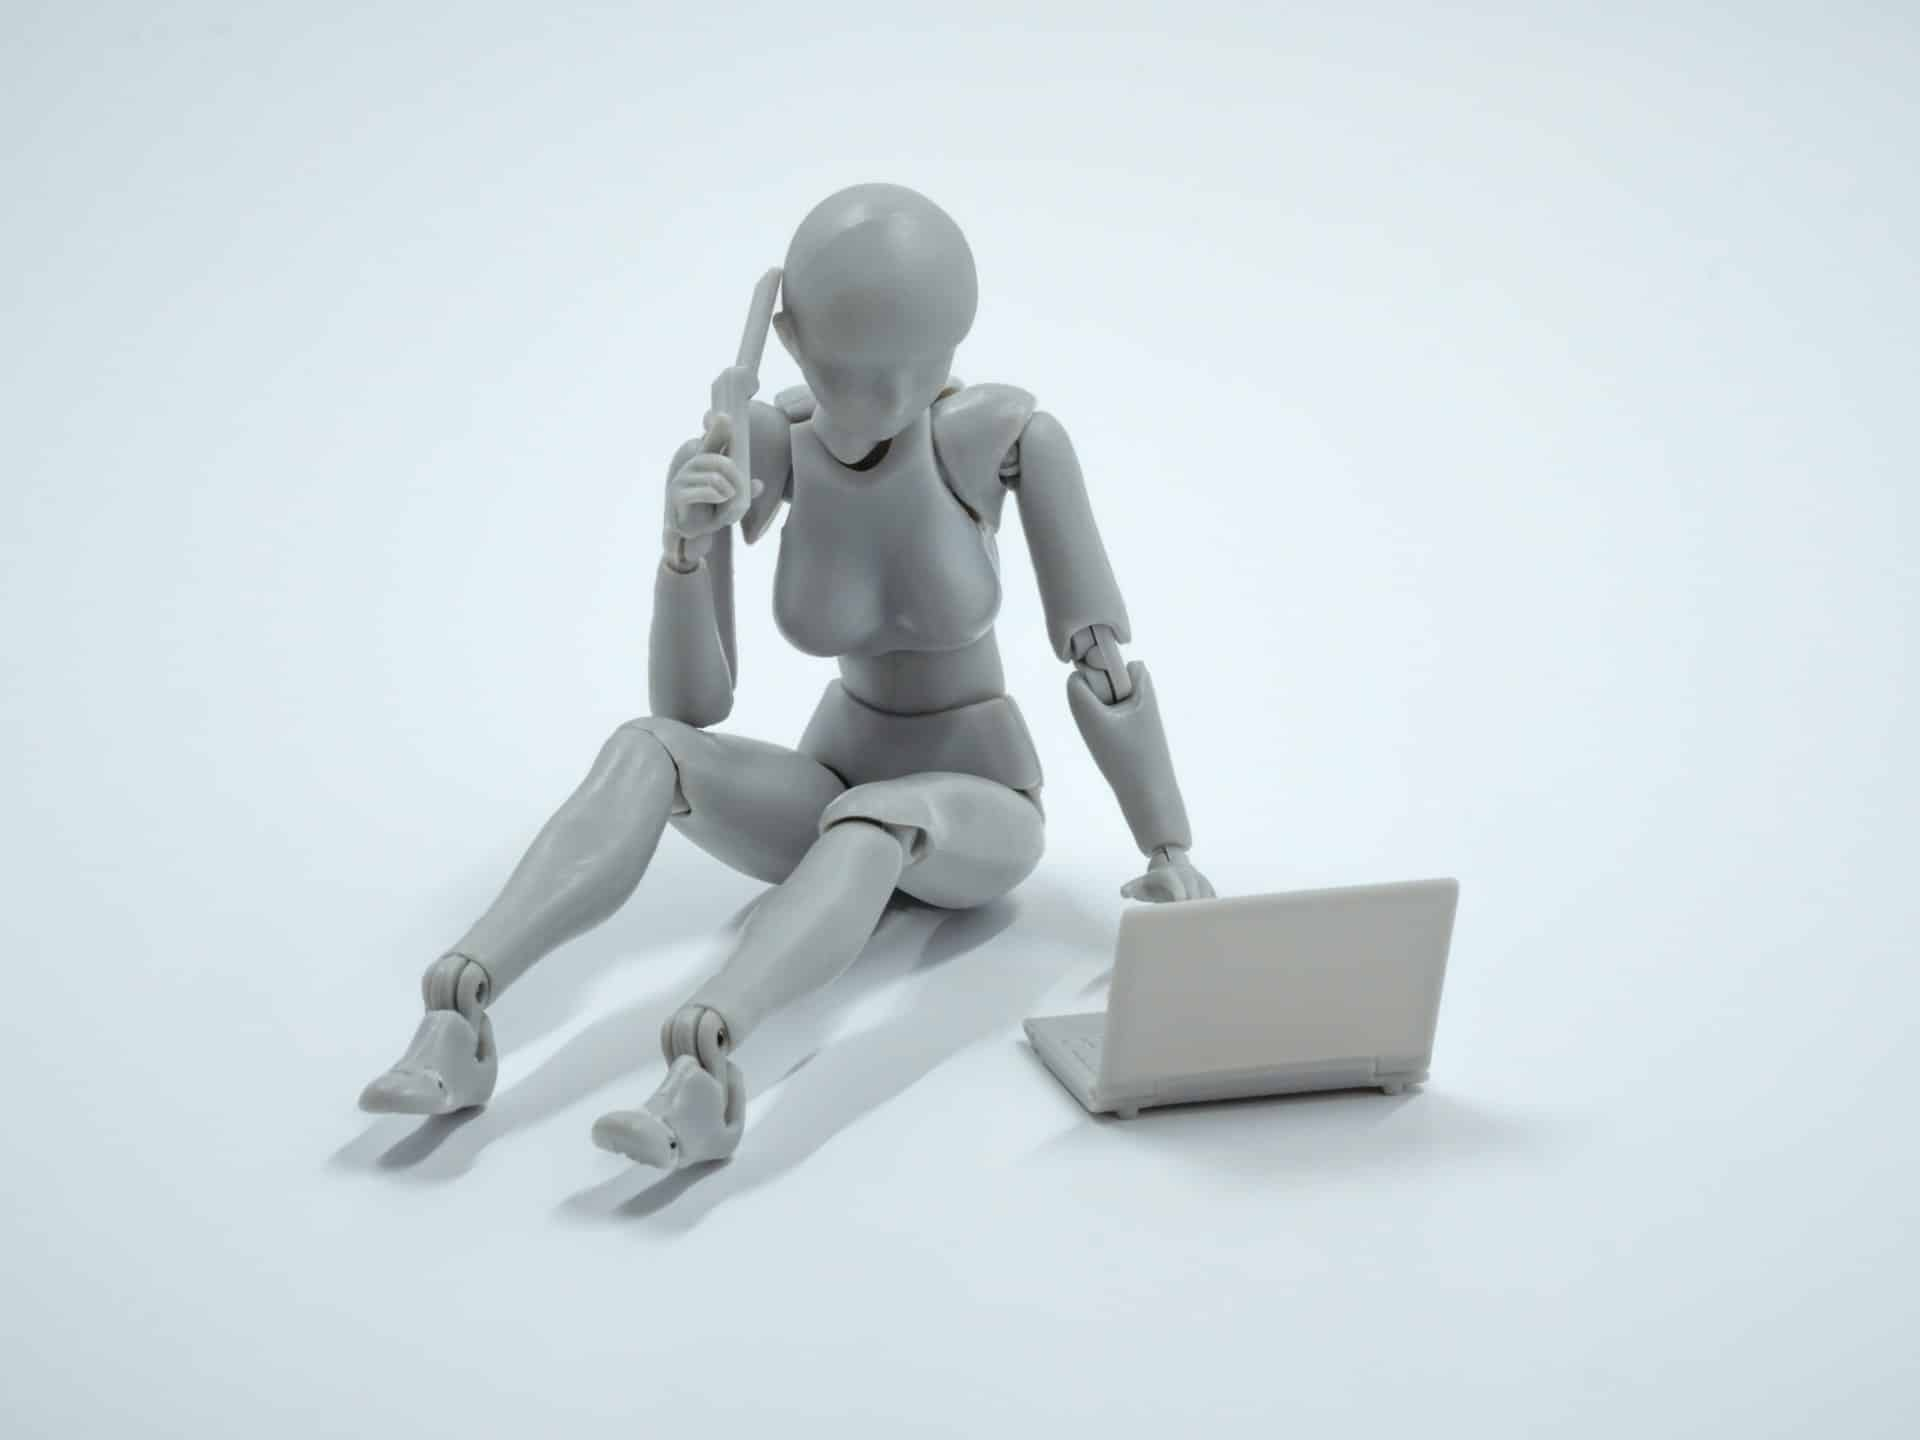 robot using laptop and telephone